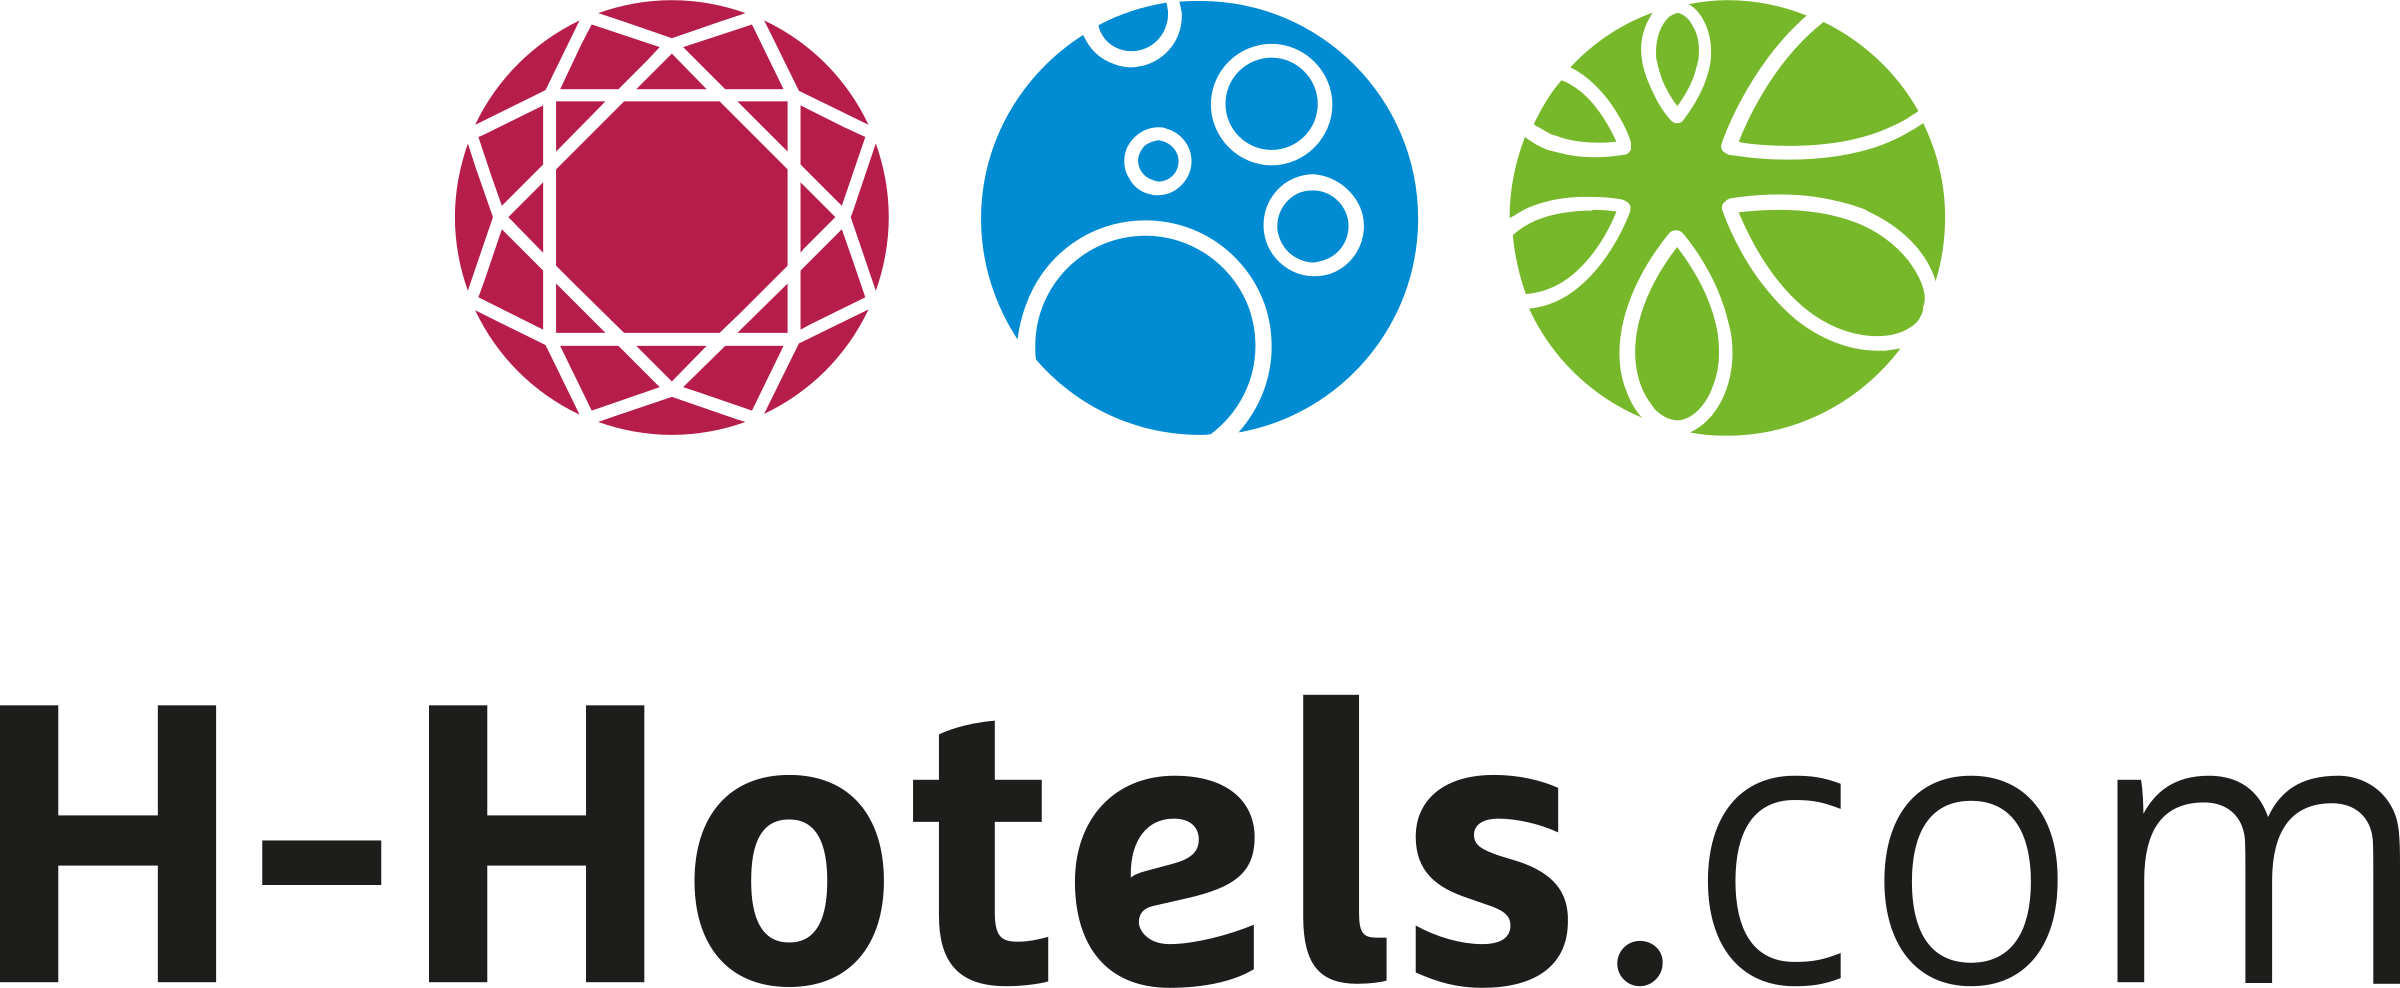 H Hotels Logo PNG Transparent